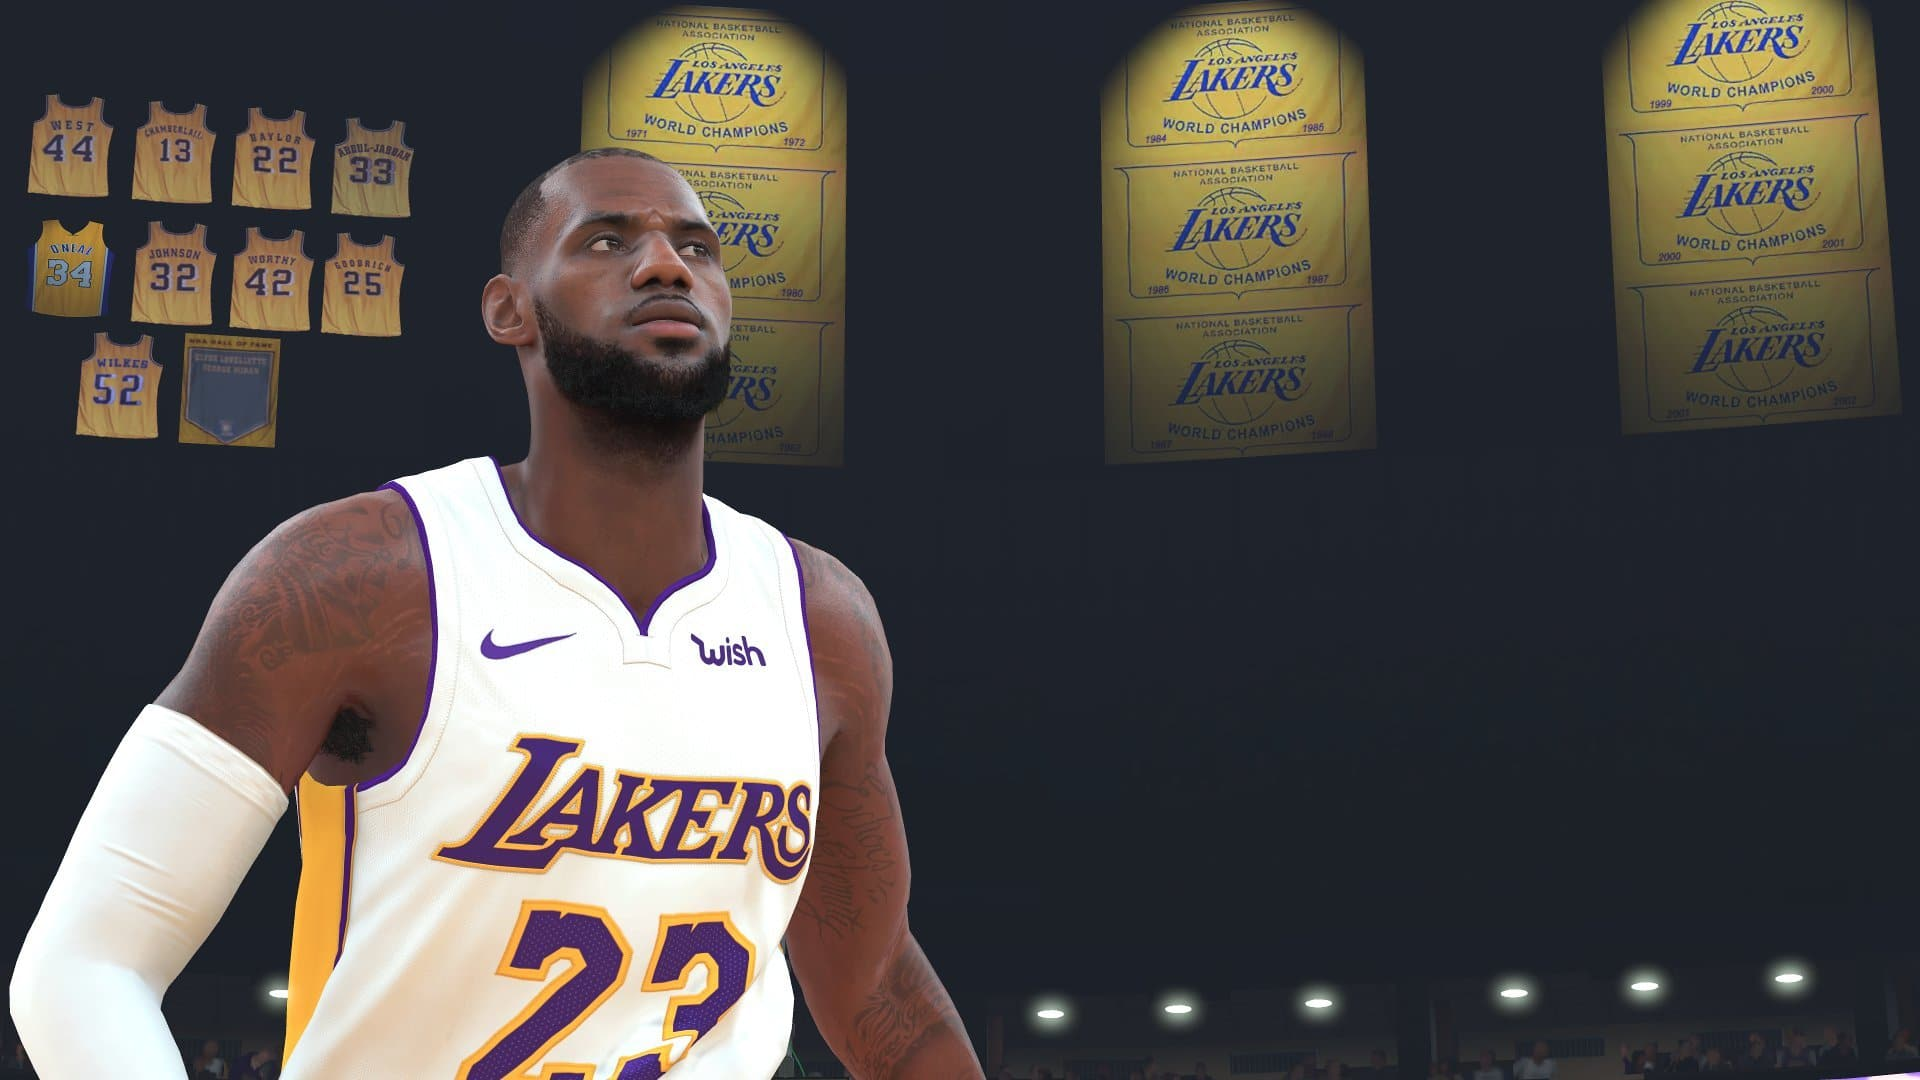 Lebron James en NBA 2k20